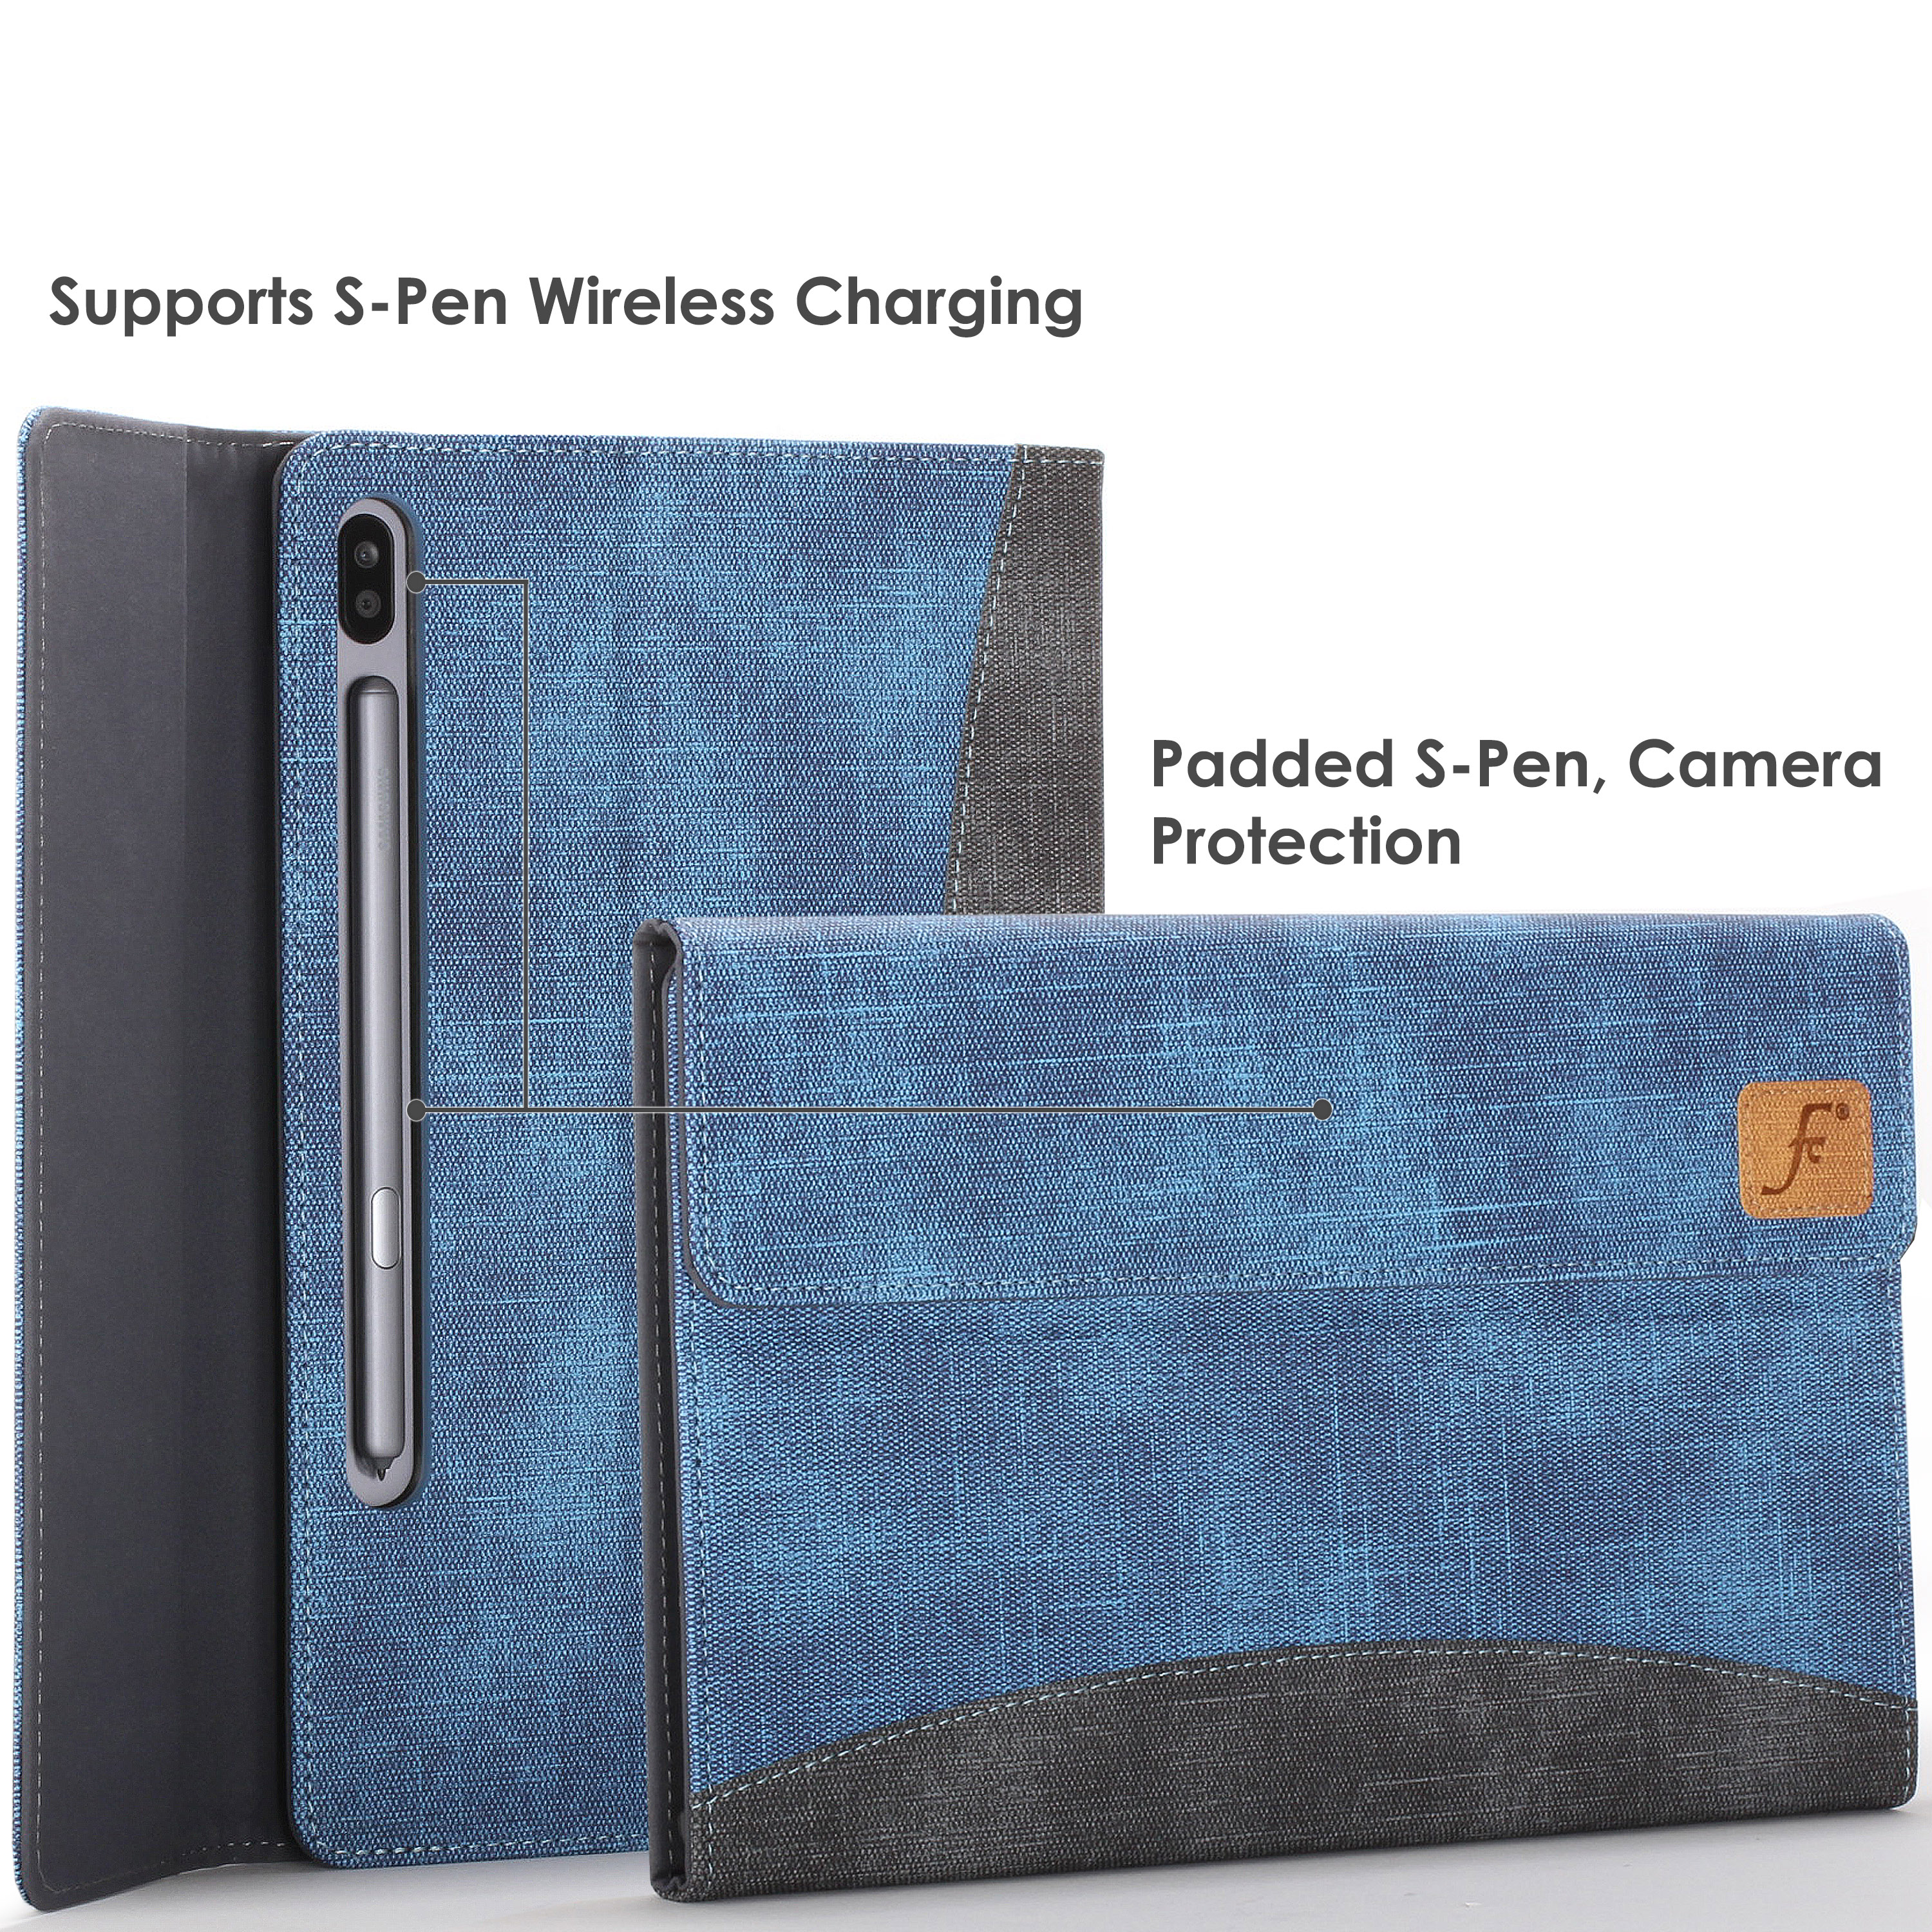 Samsung-Galaxy-Tab-S6-10-5-Case-Cover-Stand-with-Document-Pocket-amp-Sleep-Wake thumbnail 26